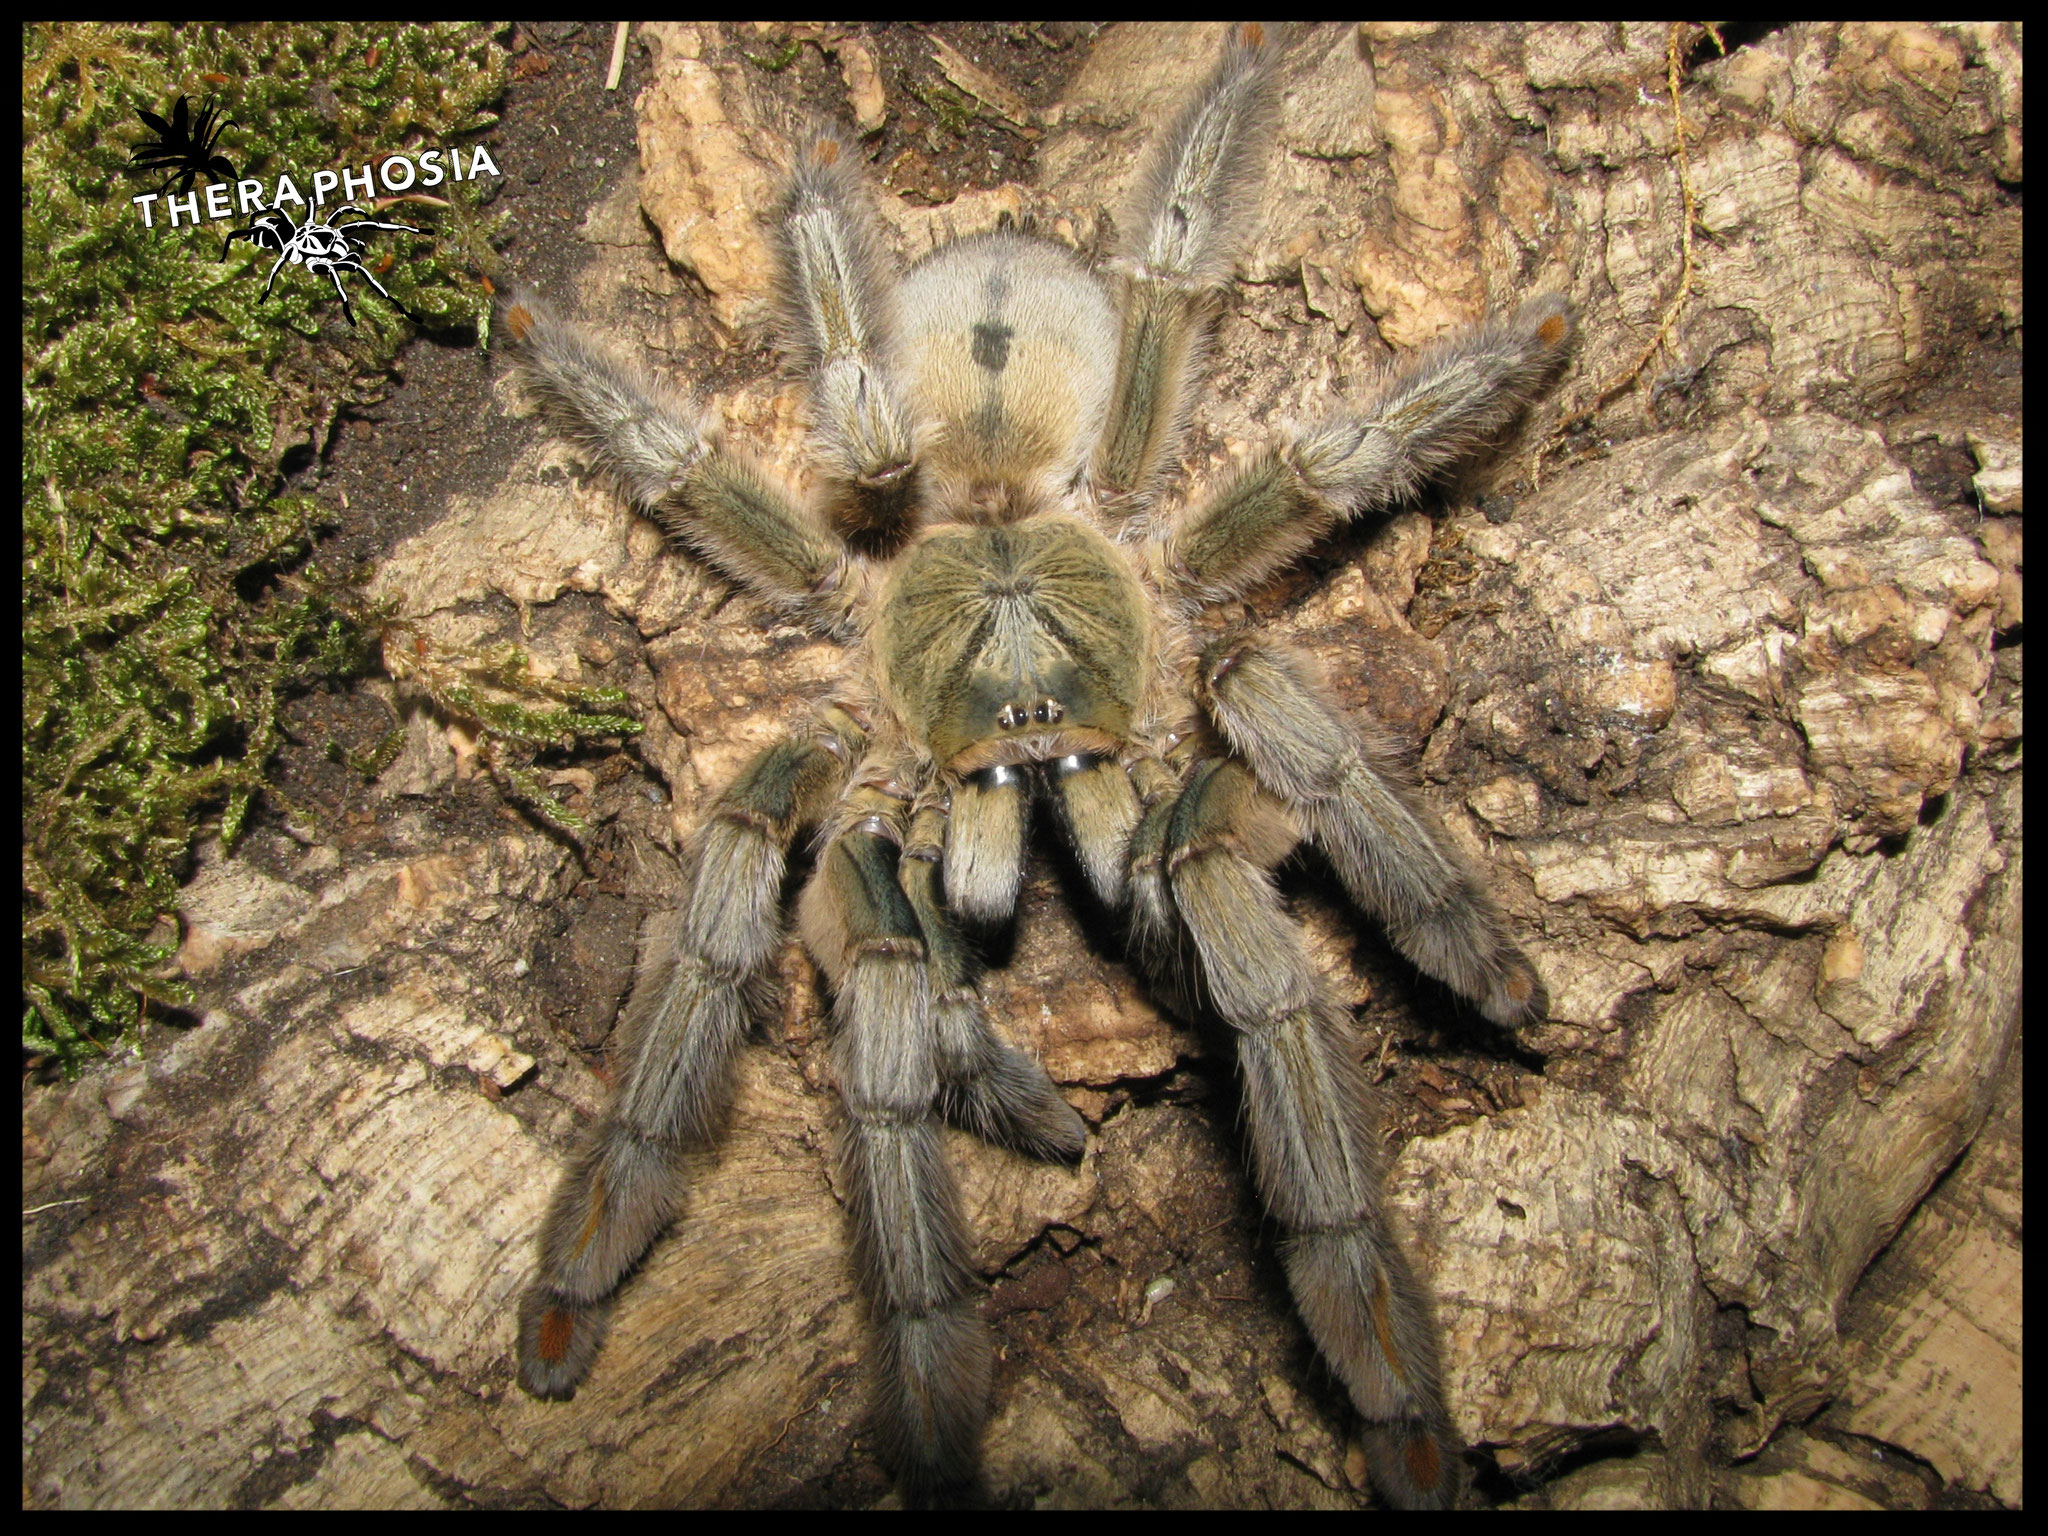 0.1 Psalmopoeus cambridgei